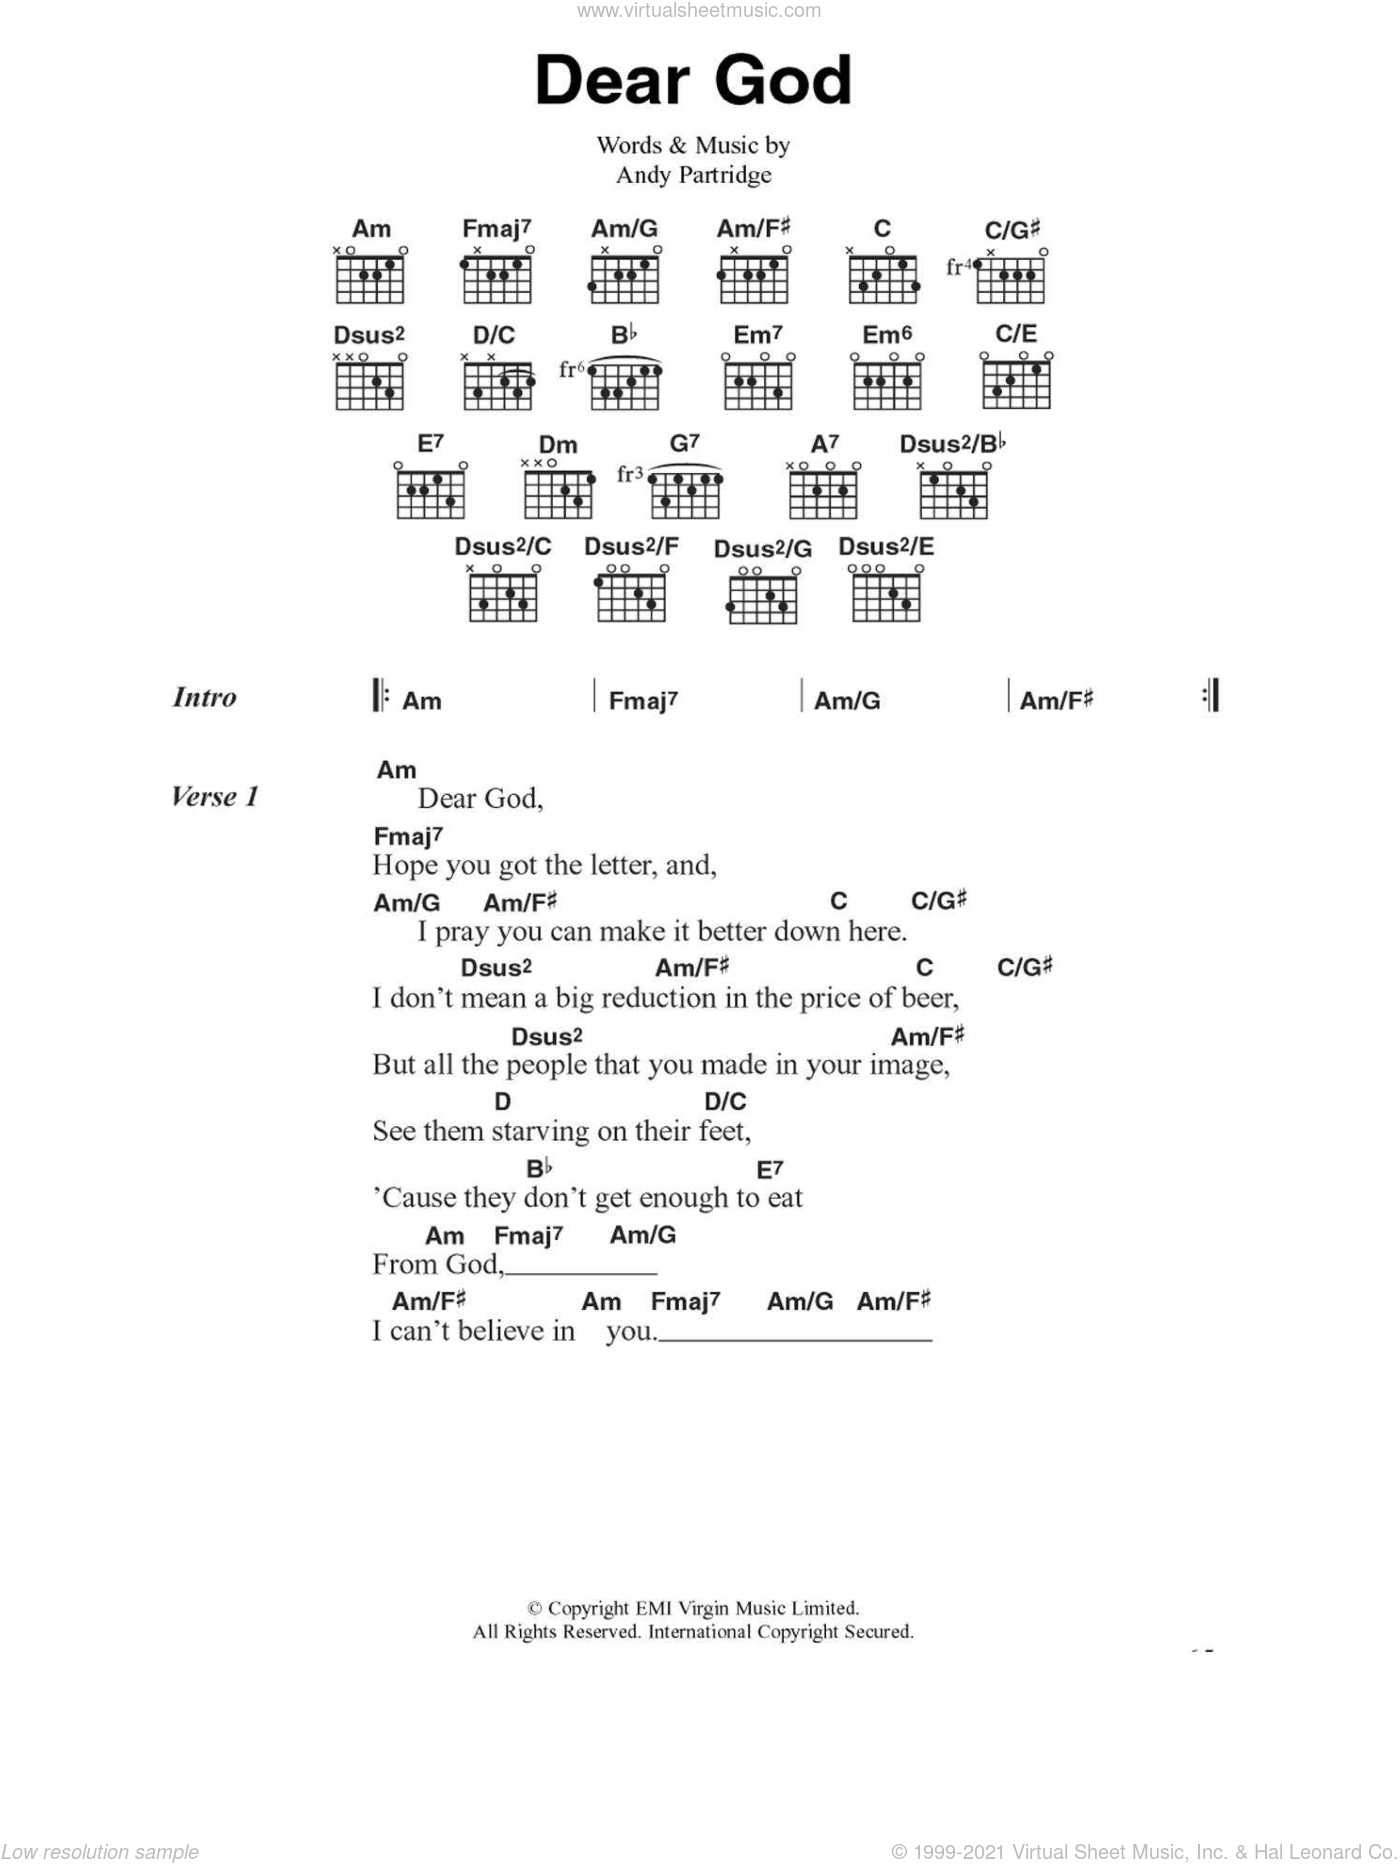 XTC - Dear God sheet music for guitar (chords) [PDF]